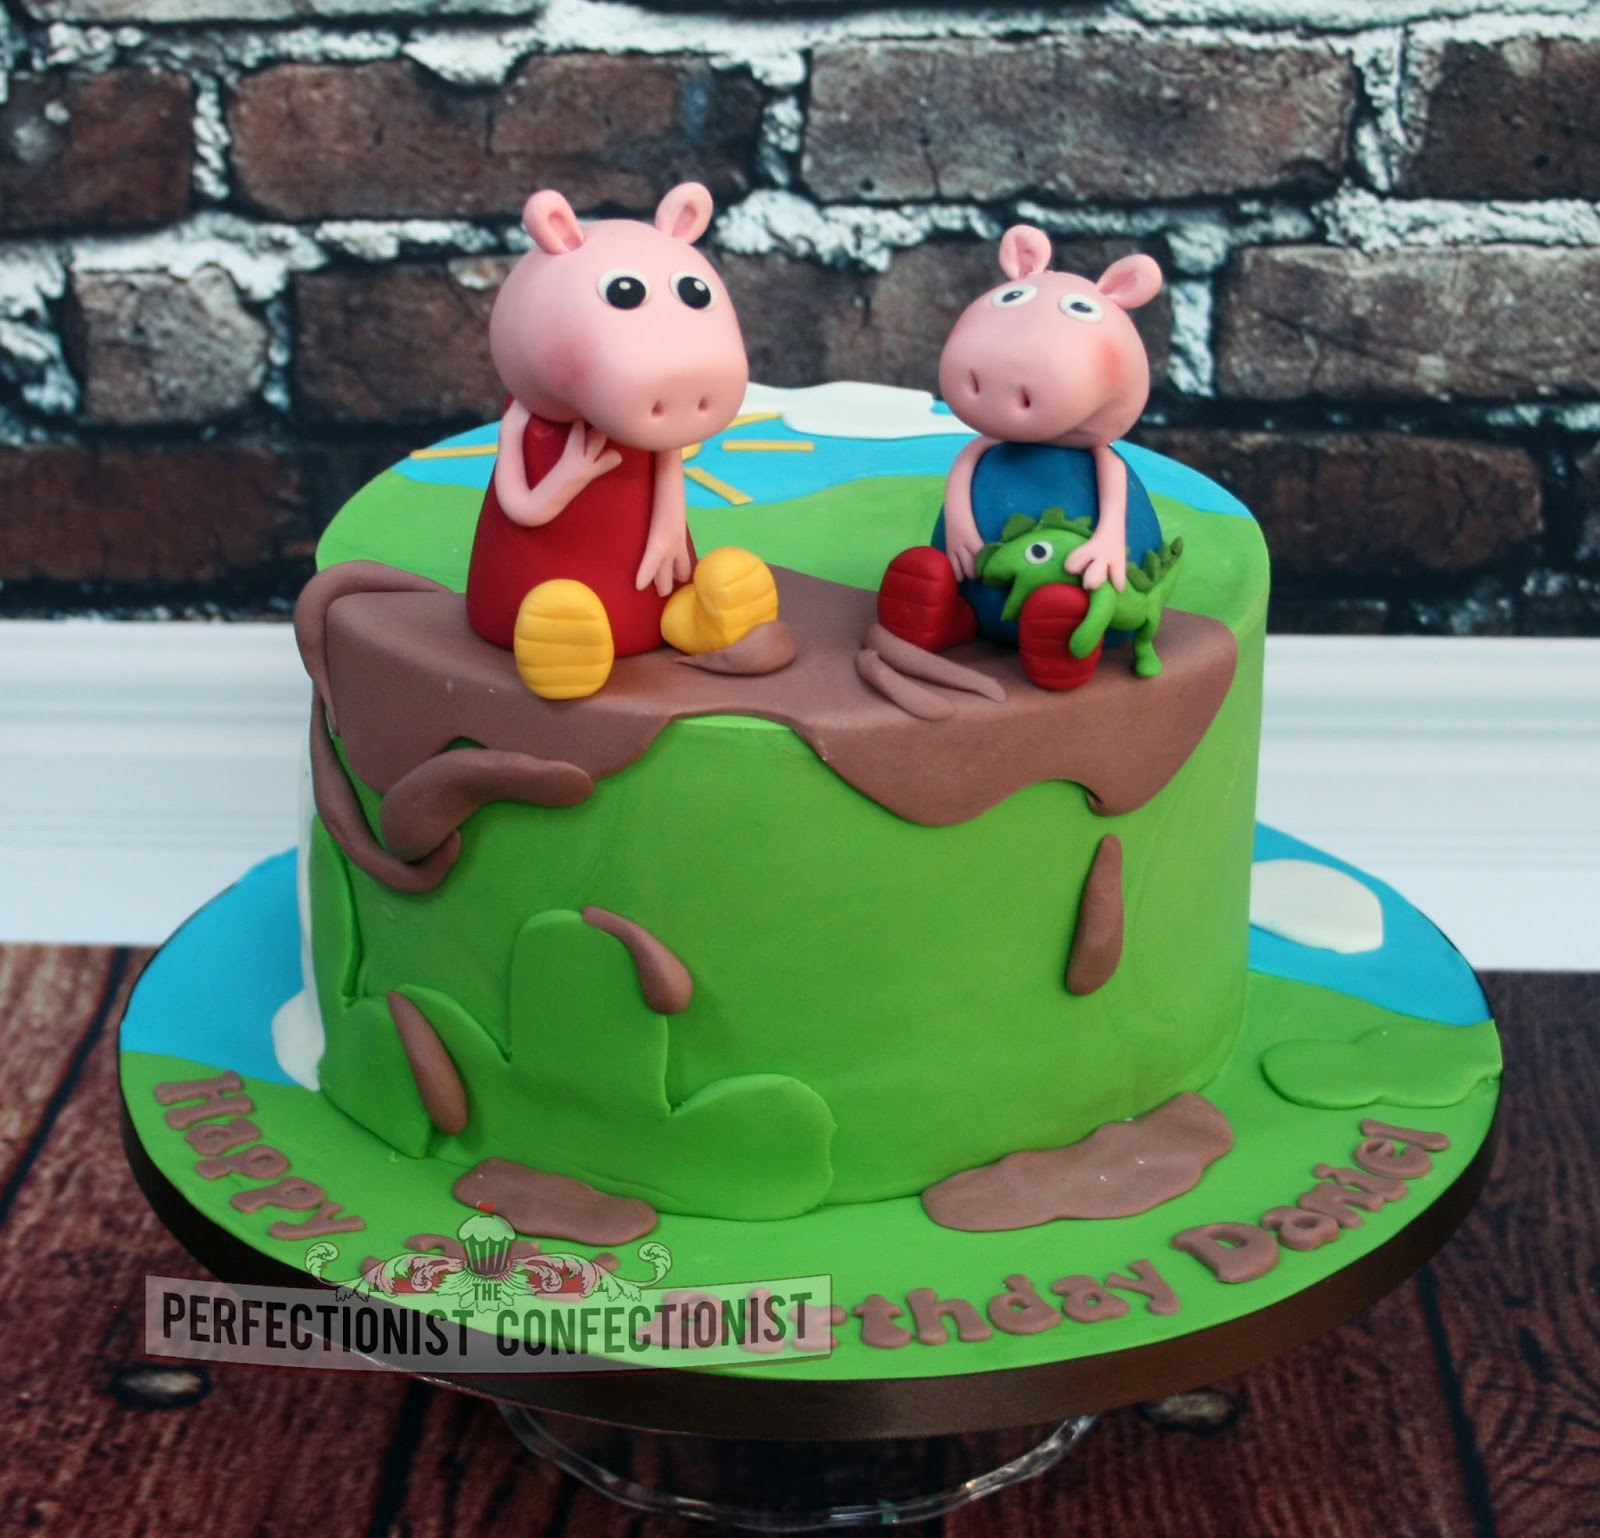 The Perfectionist Confectionist Daniel Peppa Pig Birthday Cake